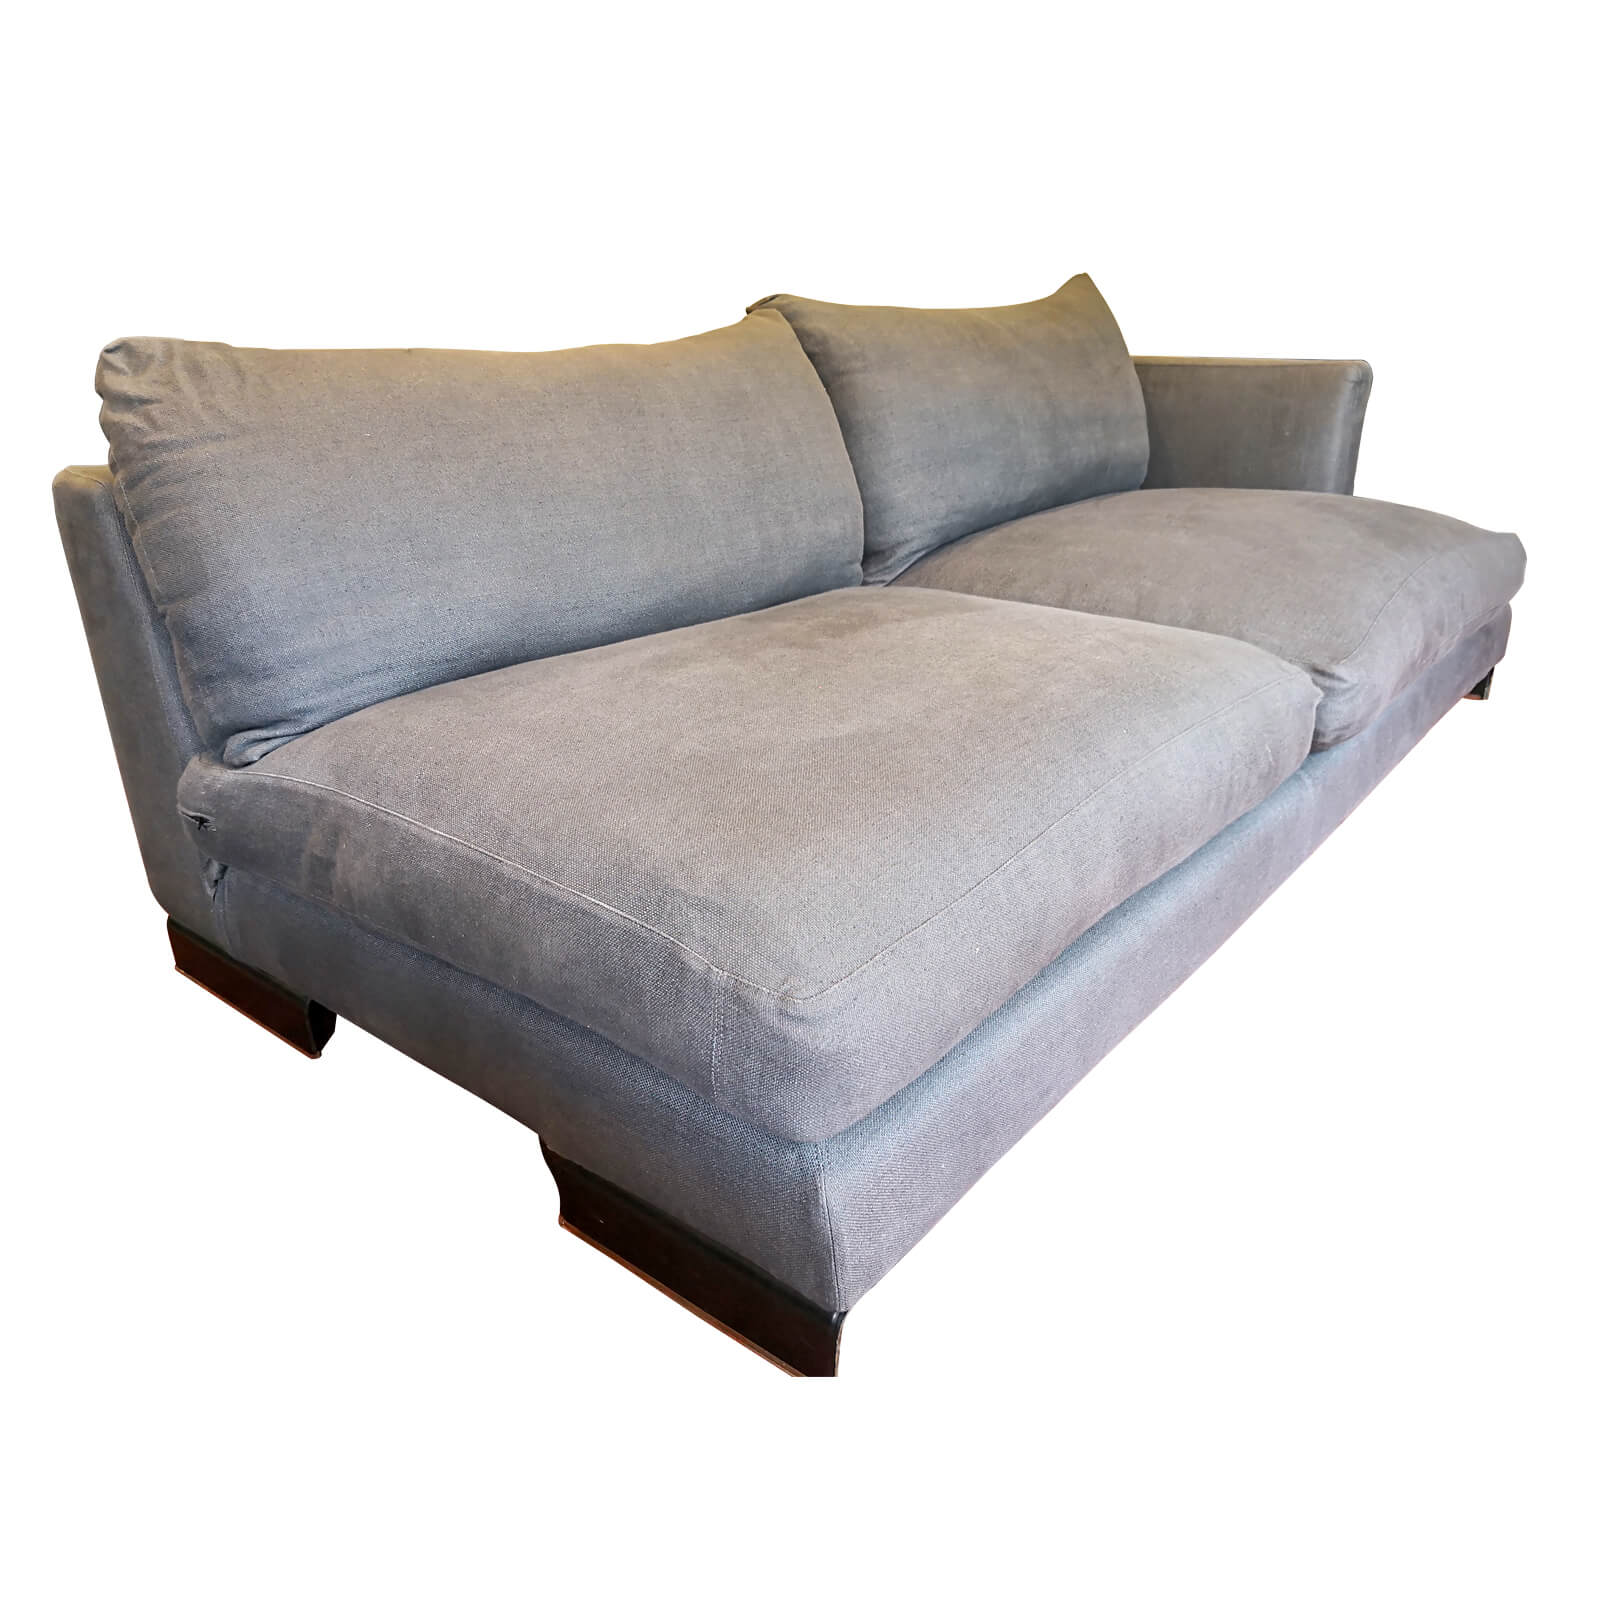 Two Design Lovers Flexform sofa right chaise side angle